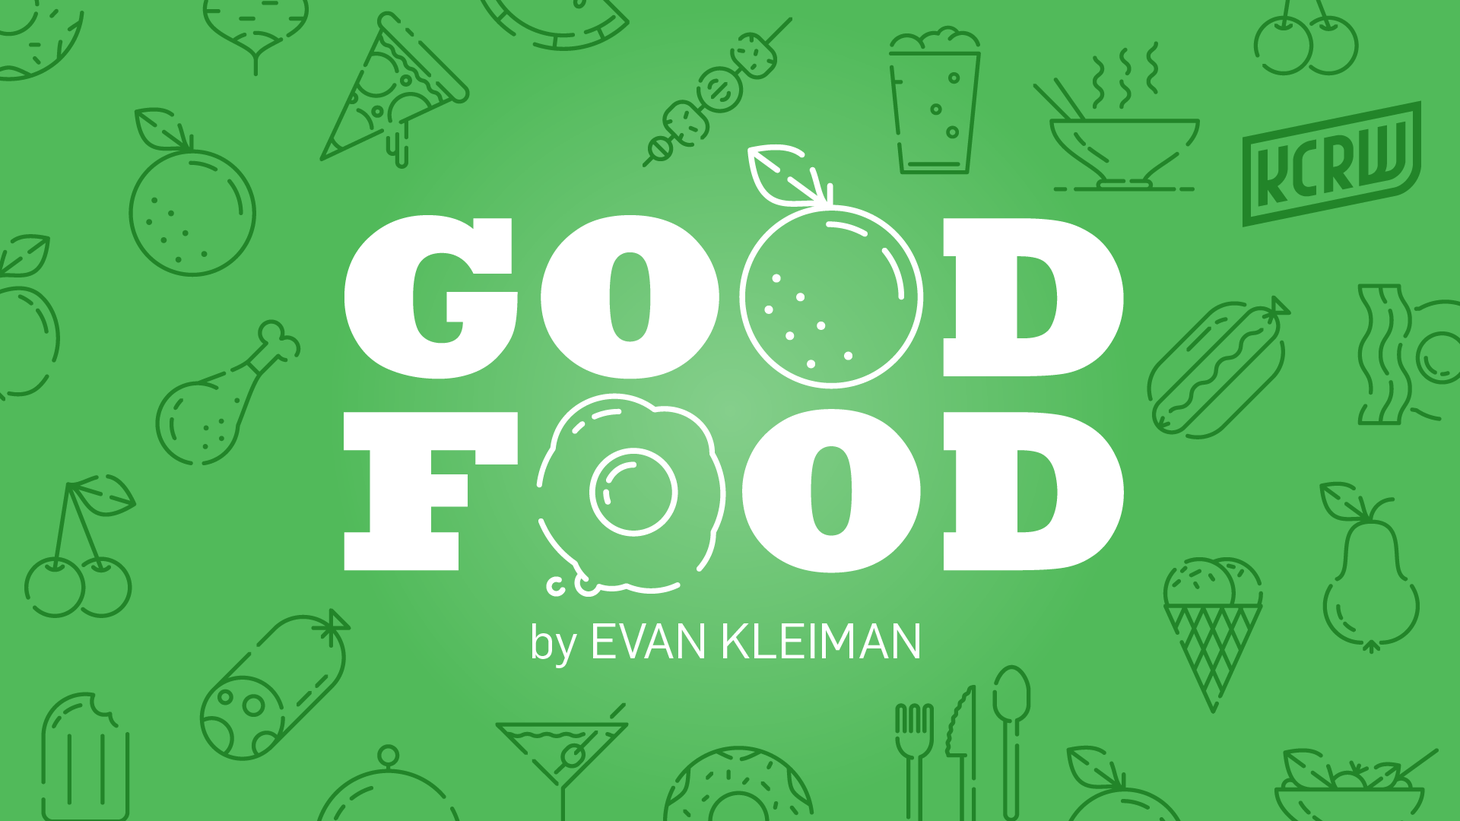 This week on Good Food, we sample all the bubbly that New Year's has to offer with wine expert Stacie Hunt. We learn about the richness of Southern food writing from John T Edge, rejoice in the combination of butter, sugar and almonds with master baker Fran Gage, and talk about the mouth-watering Jewish cooking of Morocco and Egypt with Joyce Goldstein.